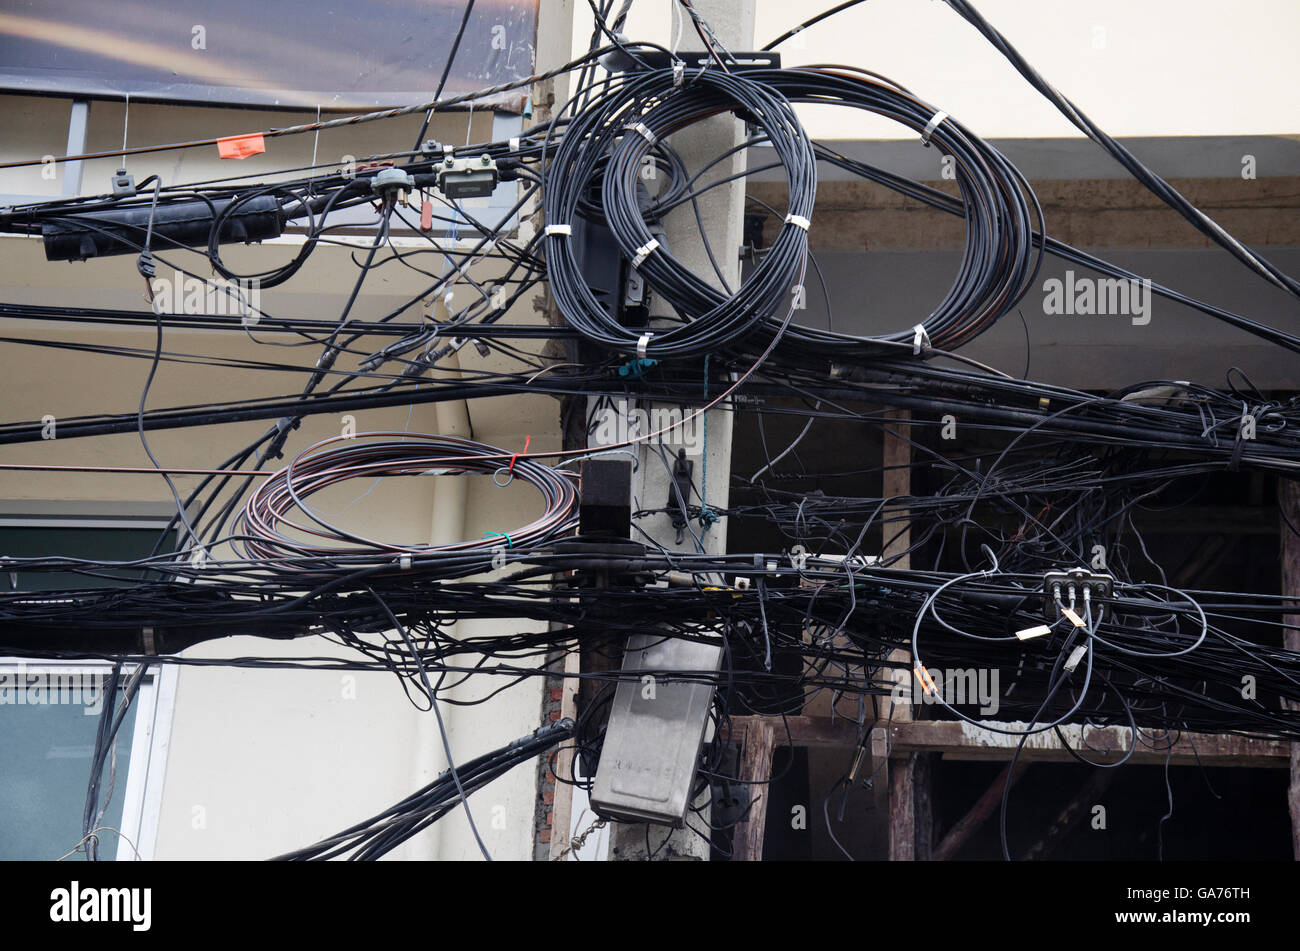 many wires messy with power line cables transformers and phone lines GA76TH many wires messy with power line cables, transformers and phone old phone line wiring at aneh.co